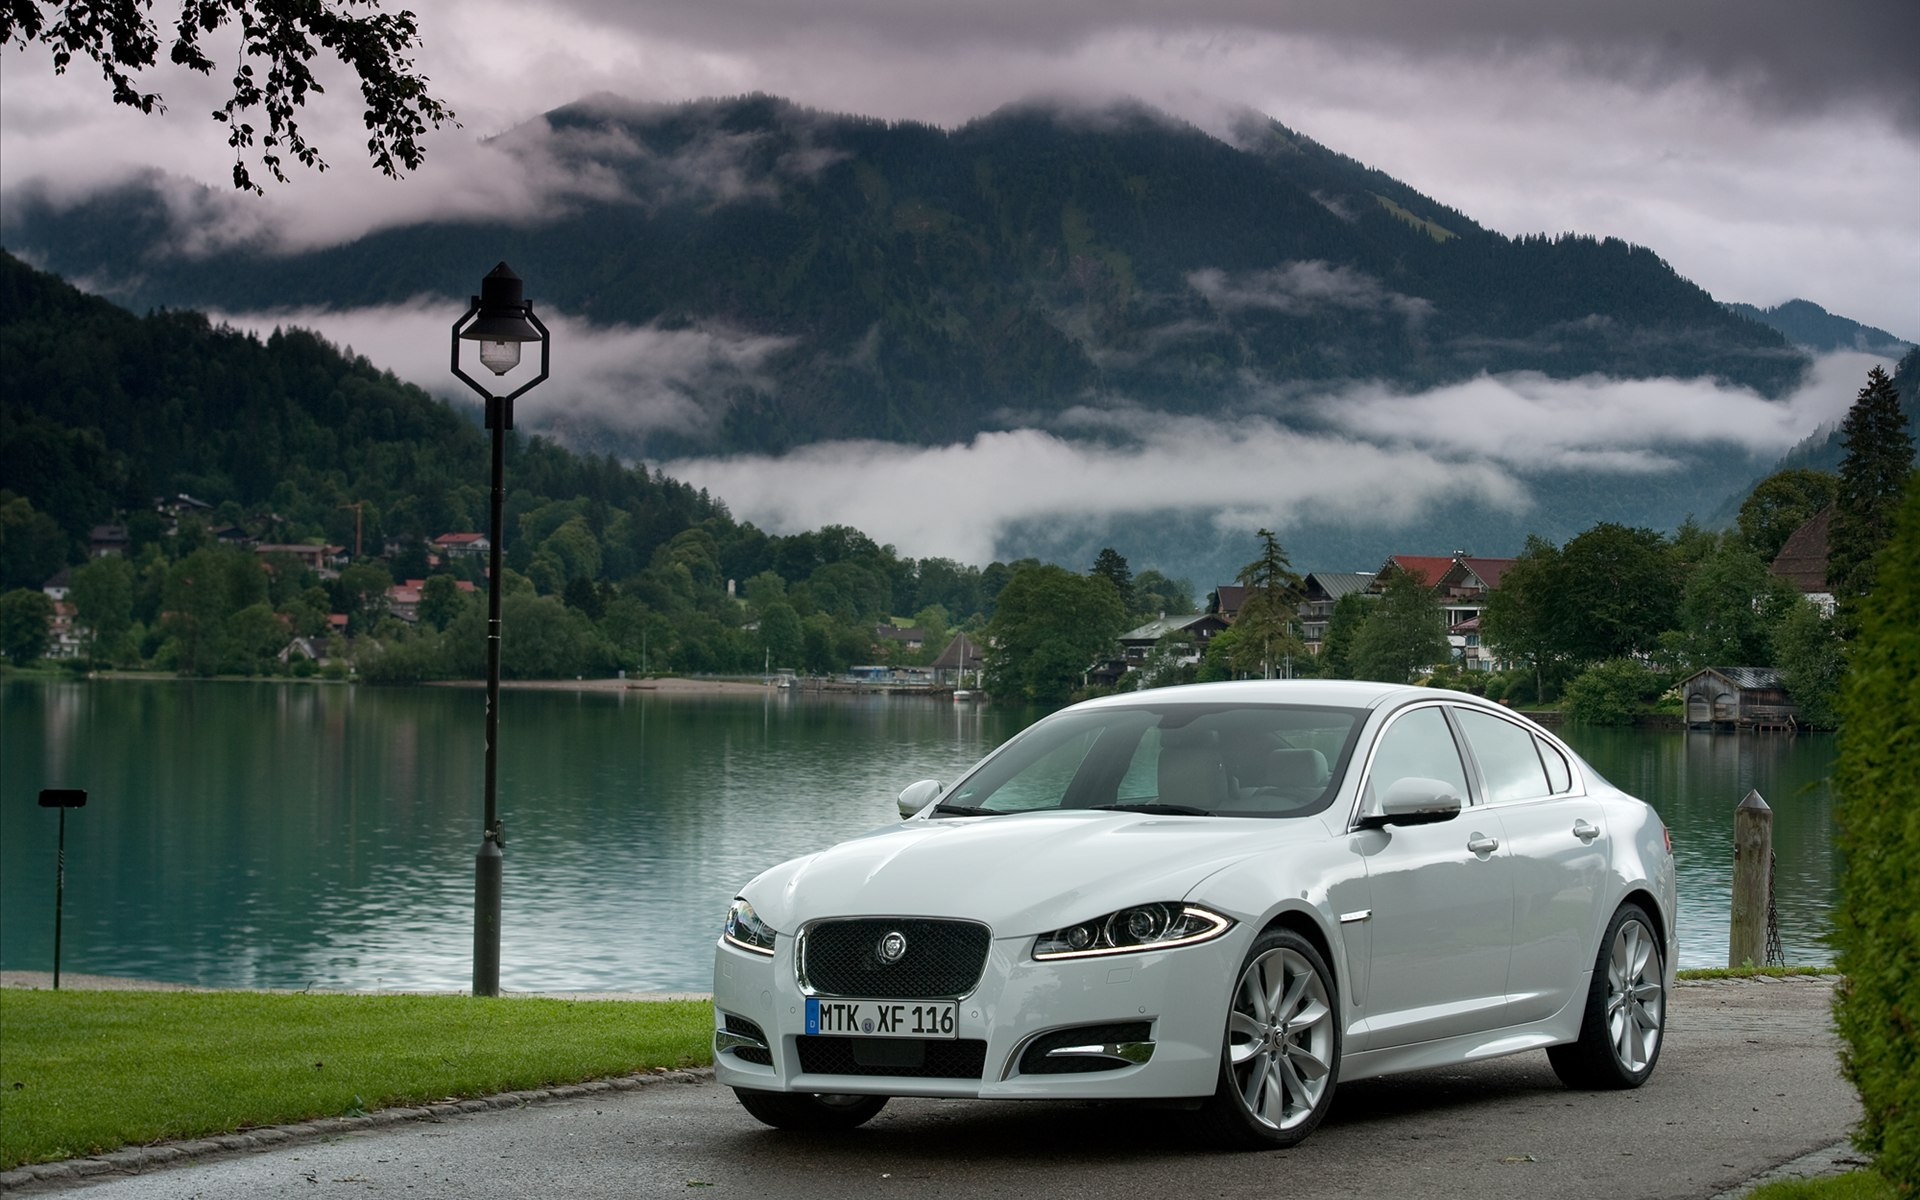 jaguar xf luxurious